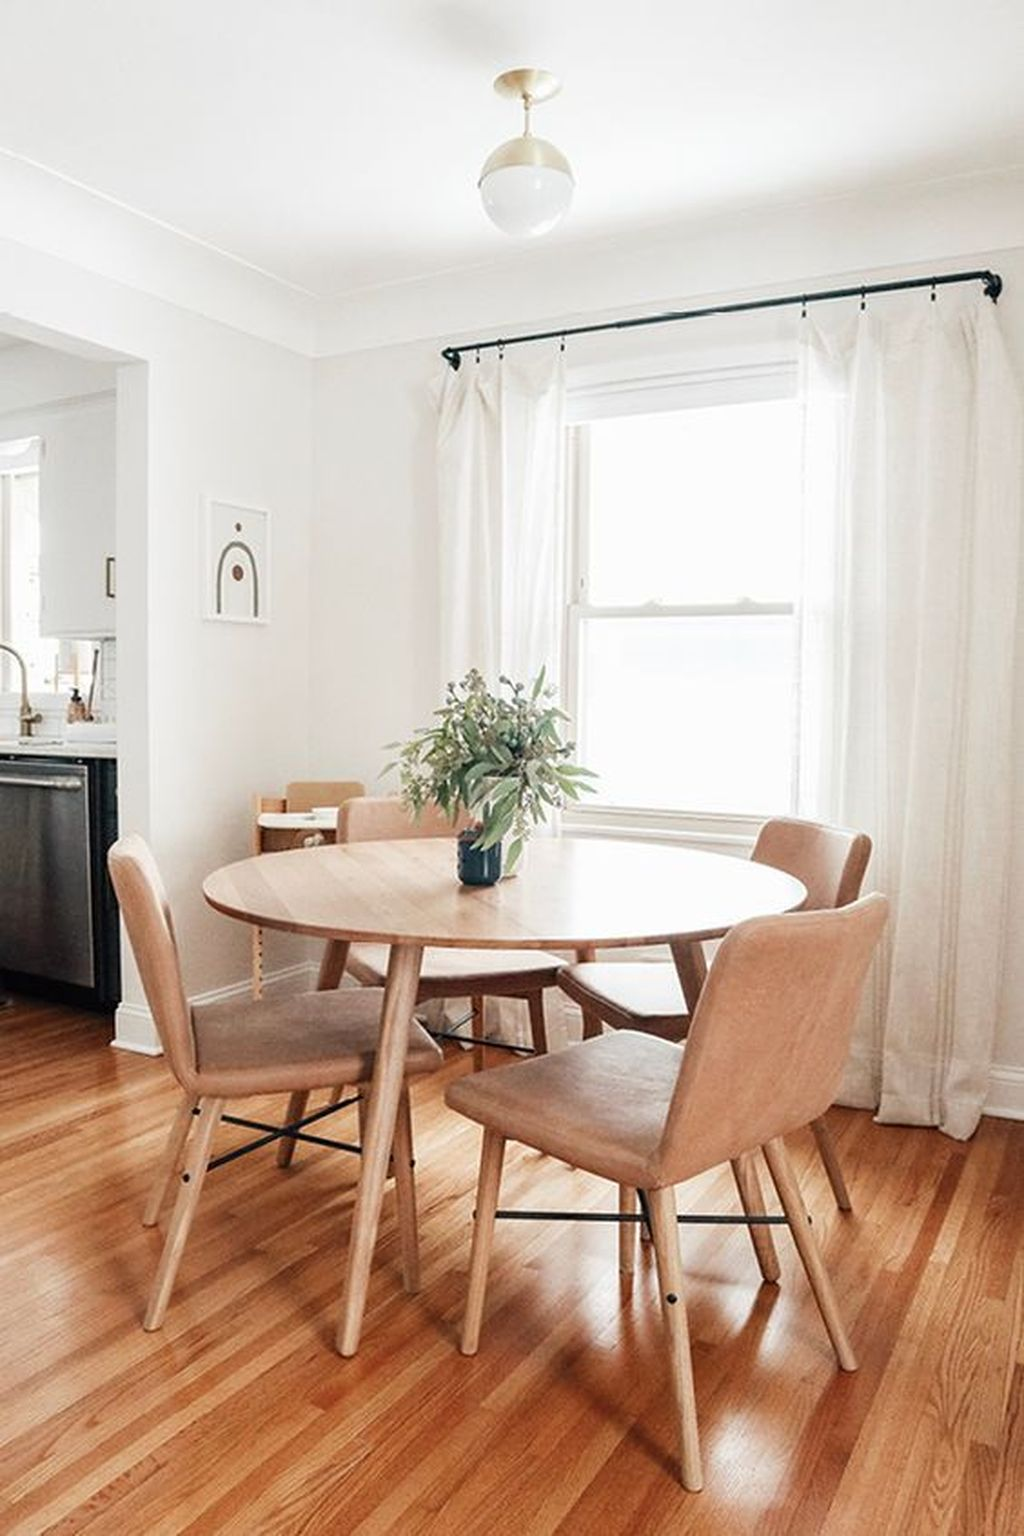 Admirable Dining Chair Design Ideas You Must Have 19